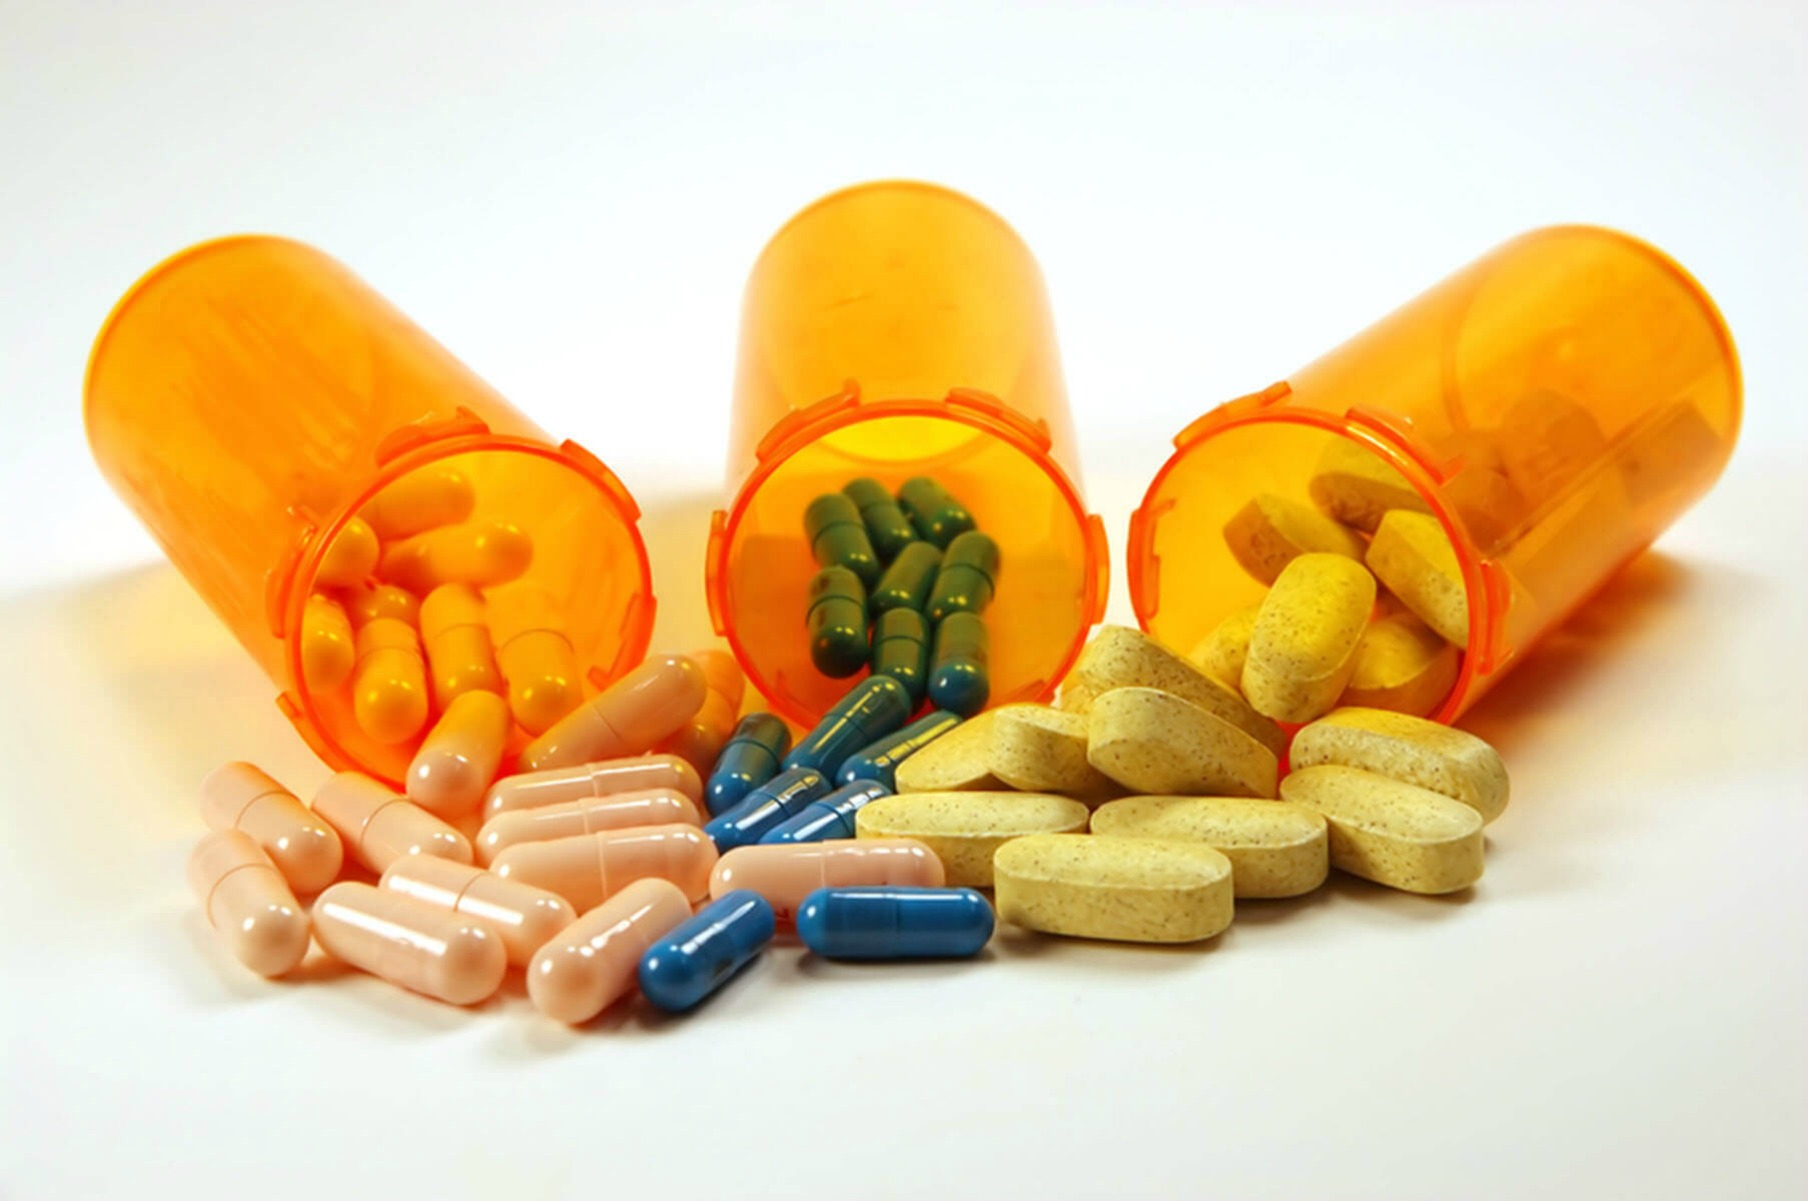 Home Care Services in Bethel Park PA: Medication Safety Tips